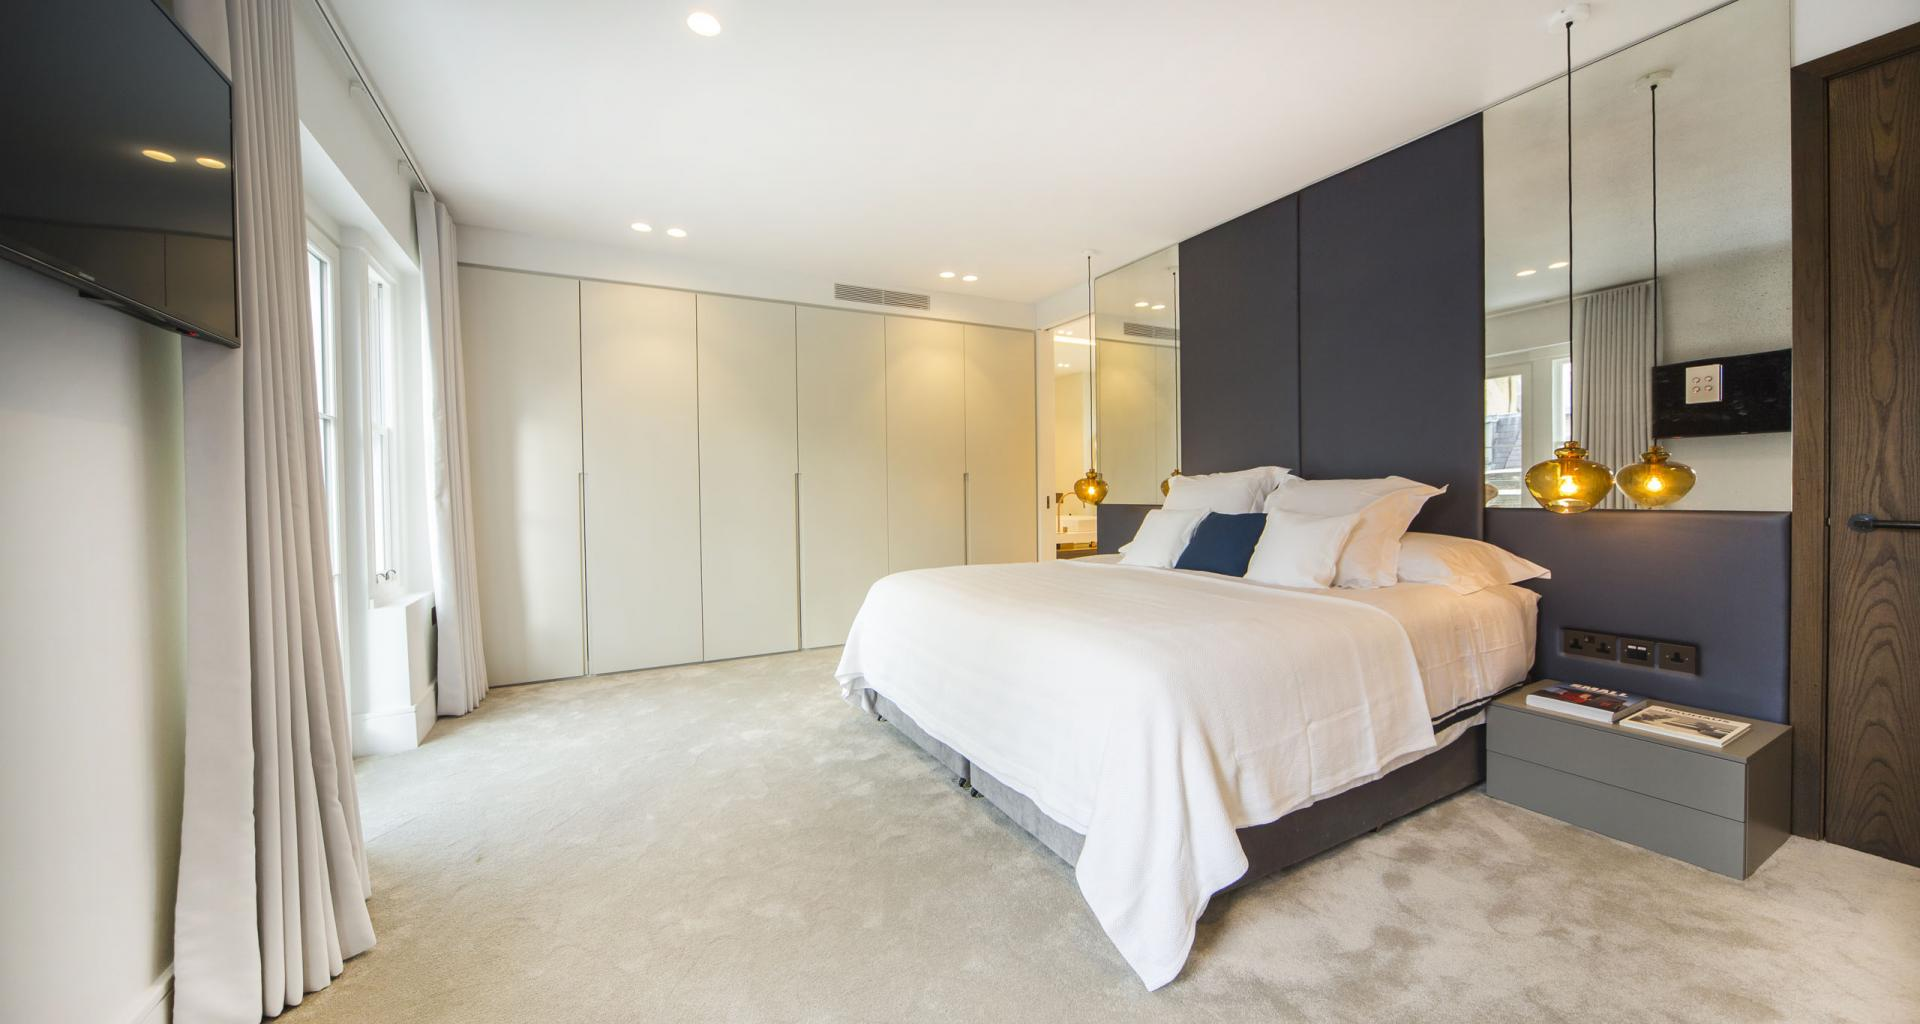 Bed at 21 Campden Hill Garden House, Notting Hill, London - Citybase Apartments